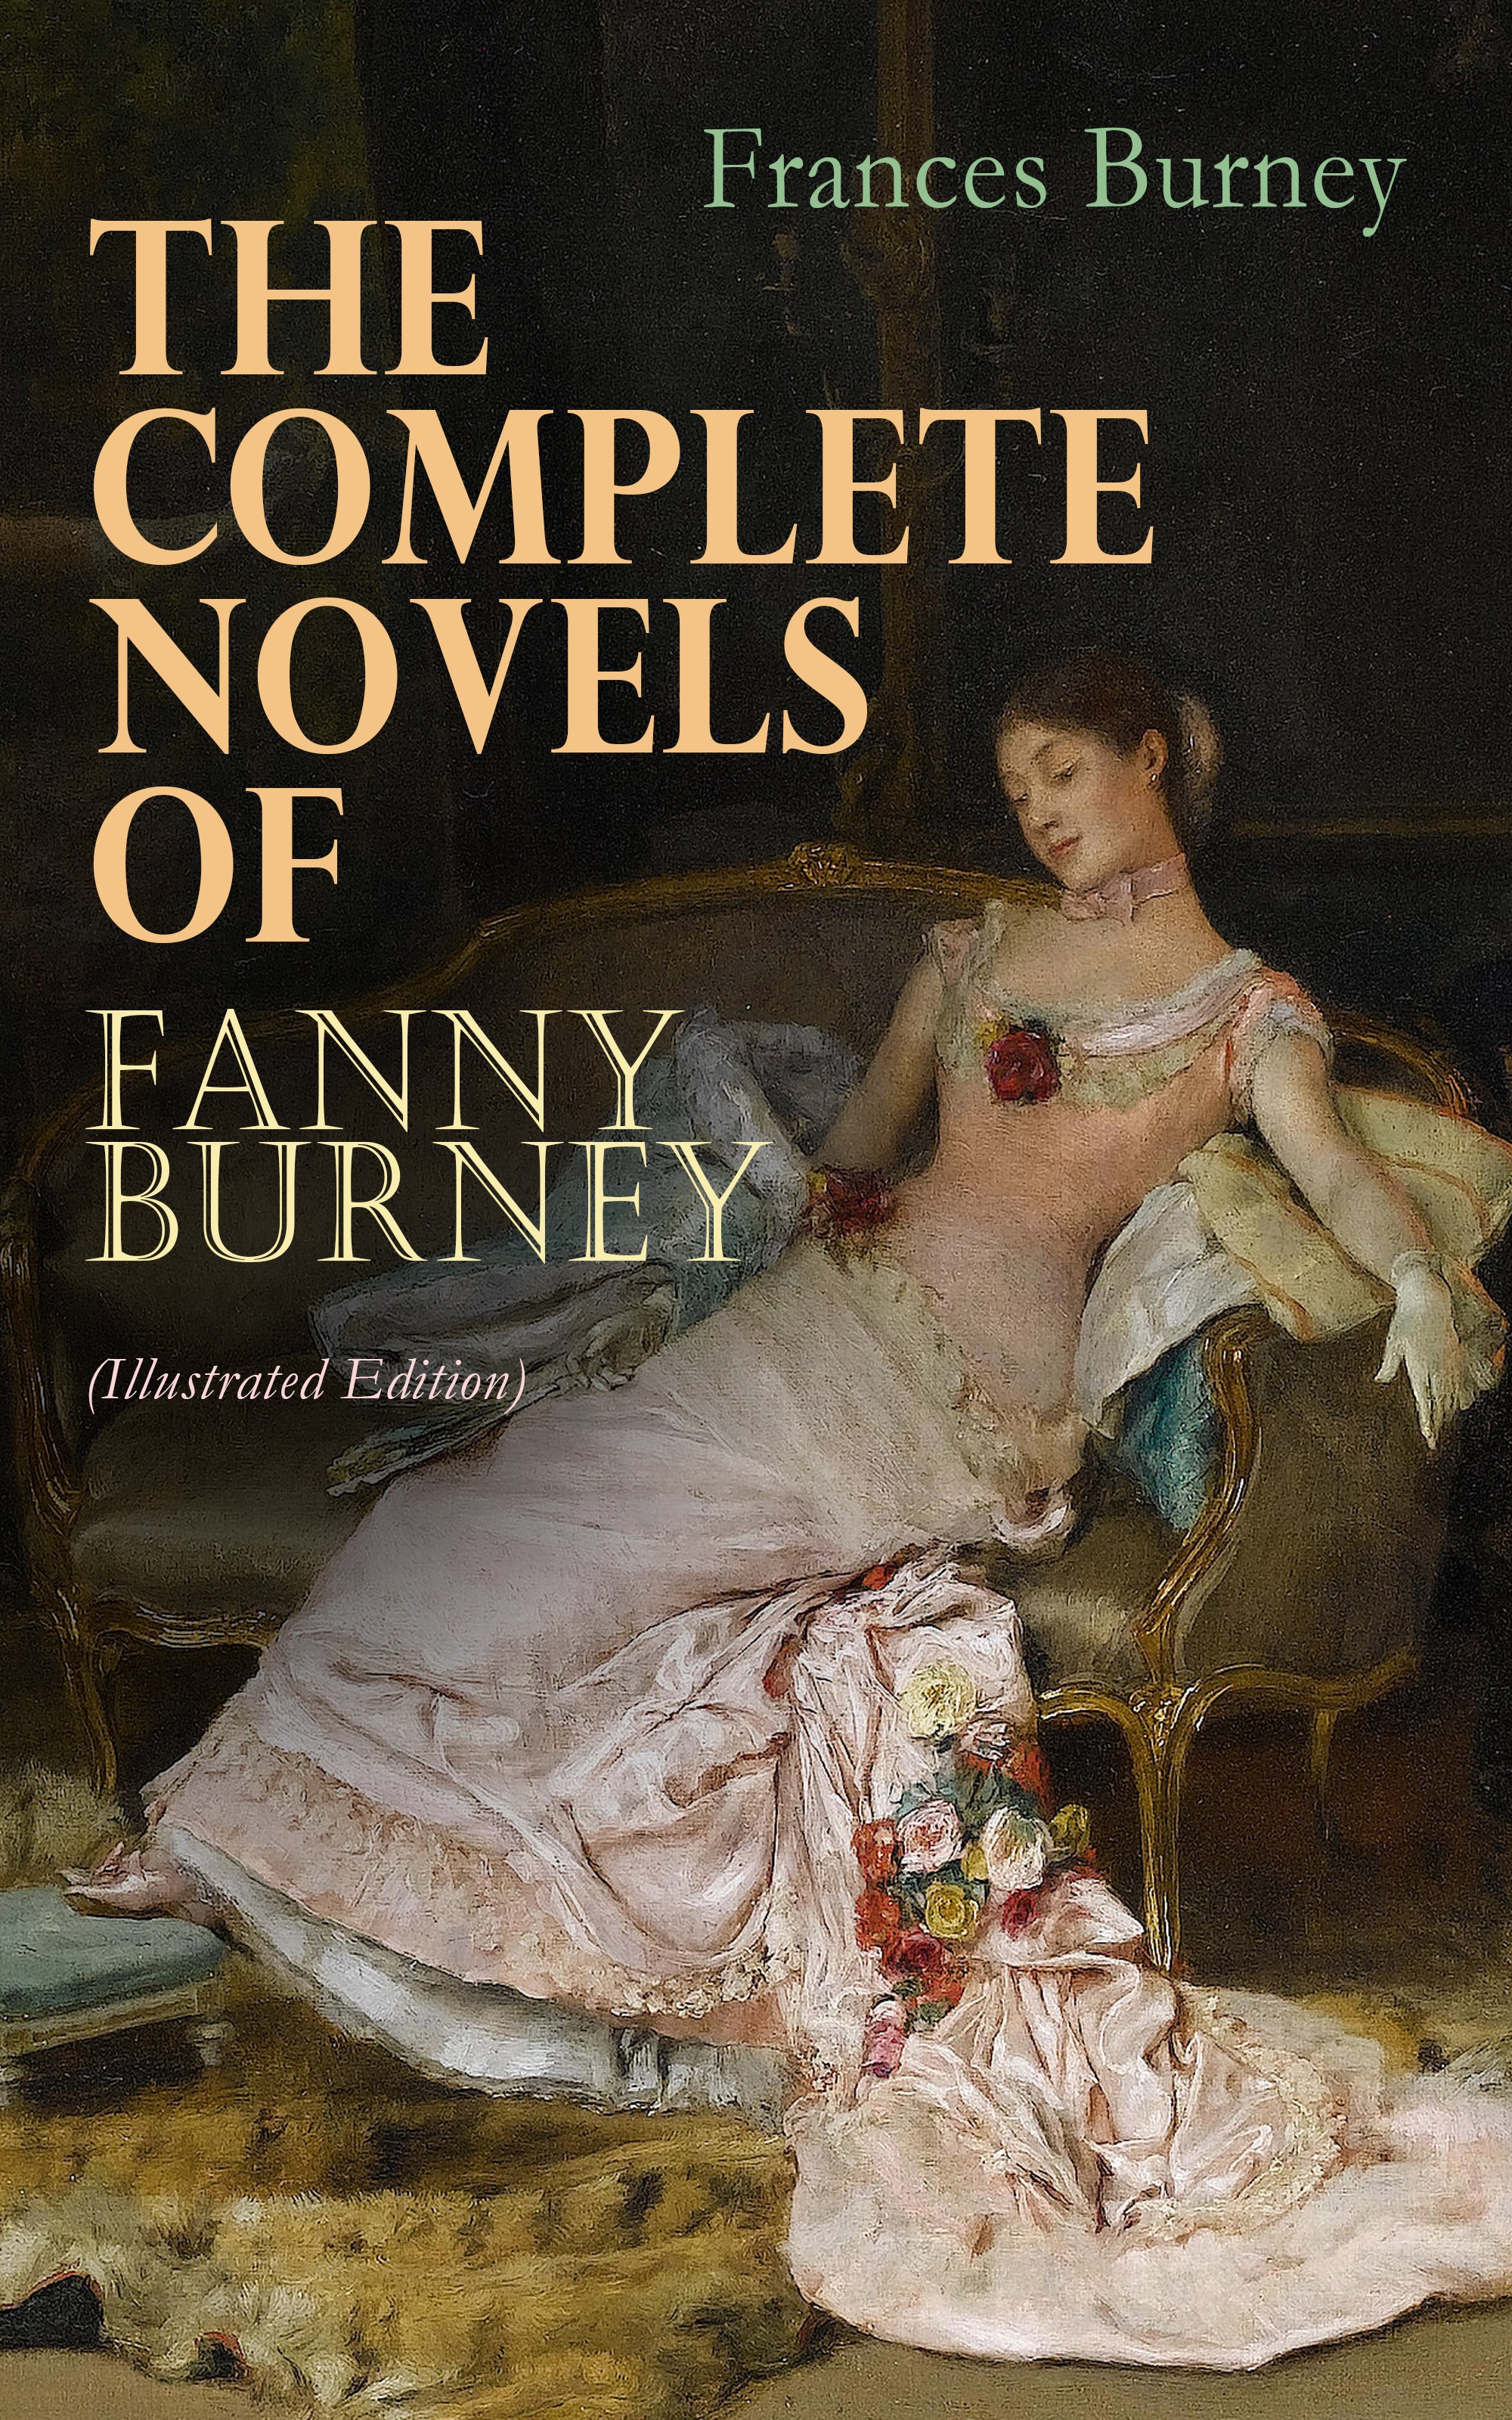 Frances Burney The Complete Novels of Fanny Burney (Illustrated Edition)